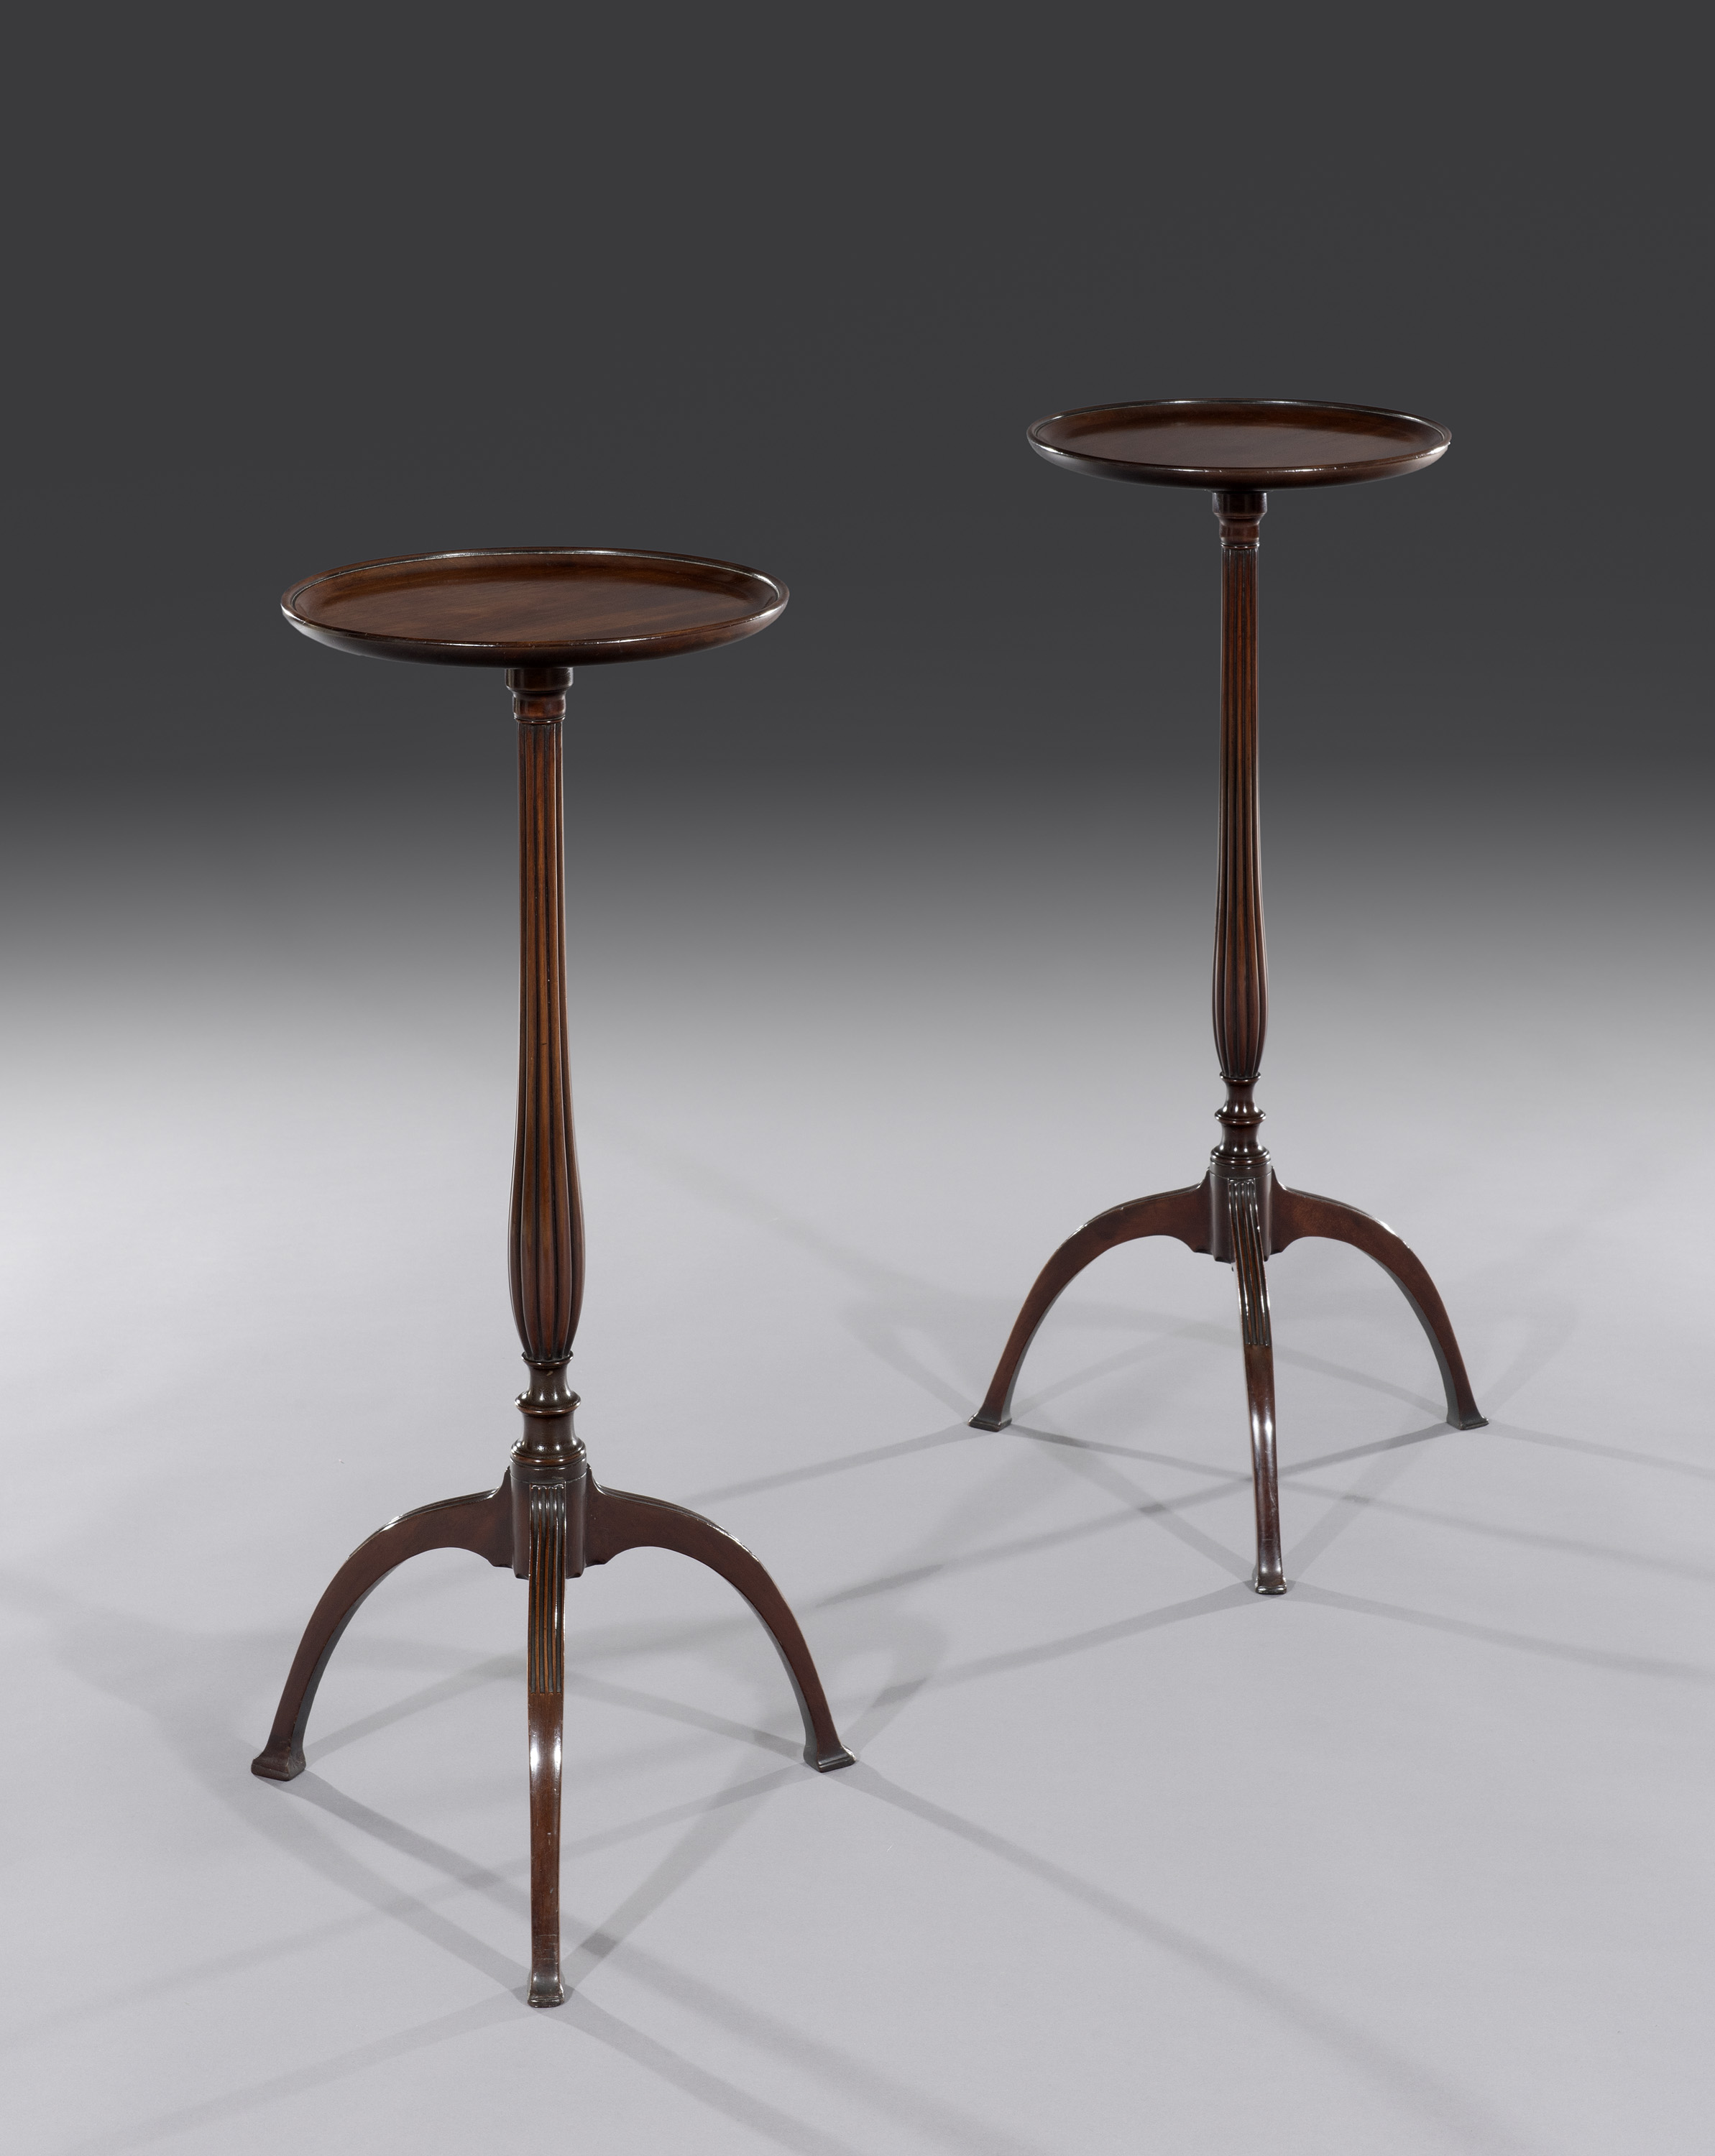 Ottery antique furniture pair of wine or lamp tables antique pair of wine or lamp tables antique acquisitions recent for sale mozeypictures Images